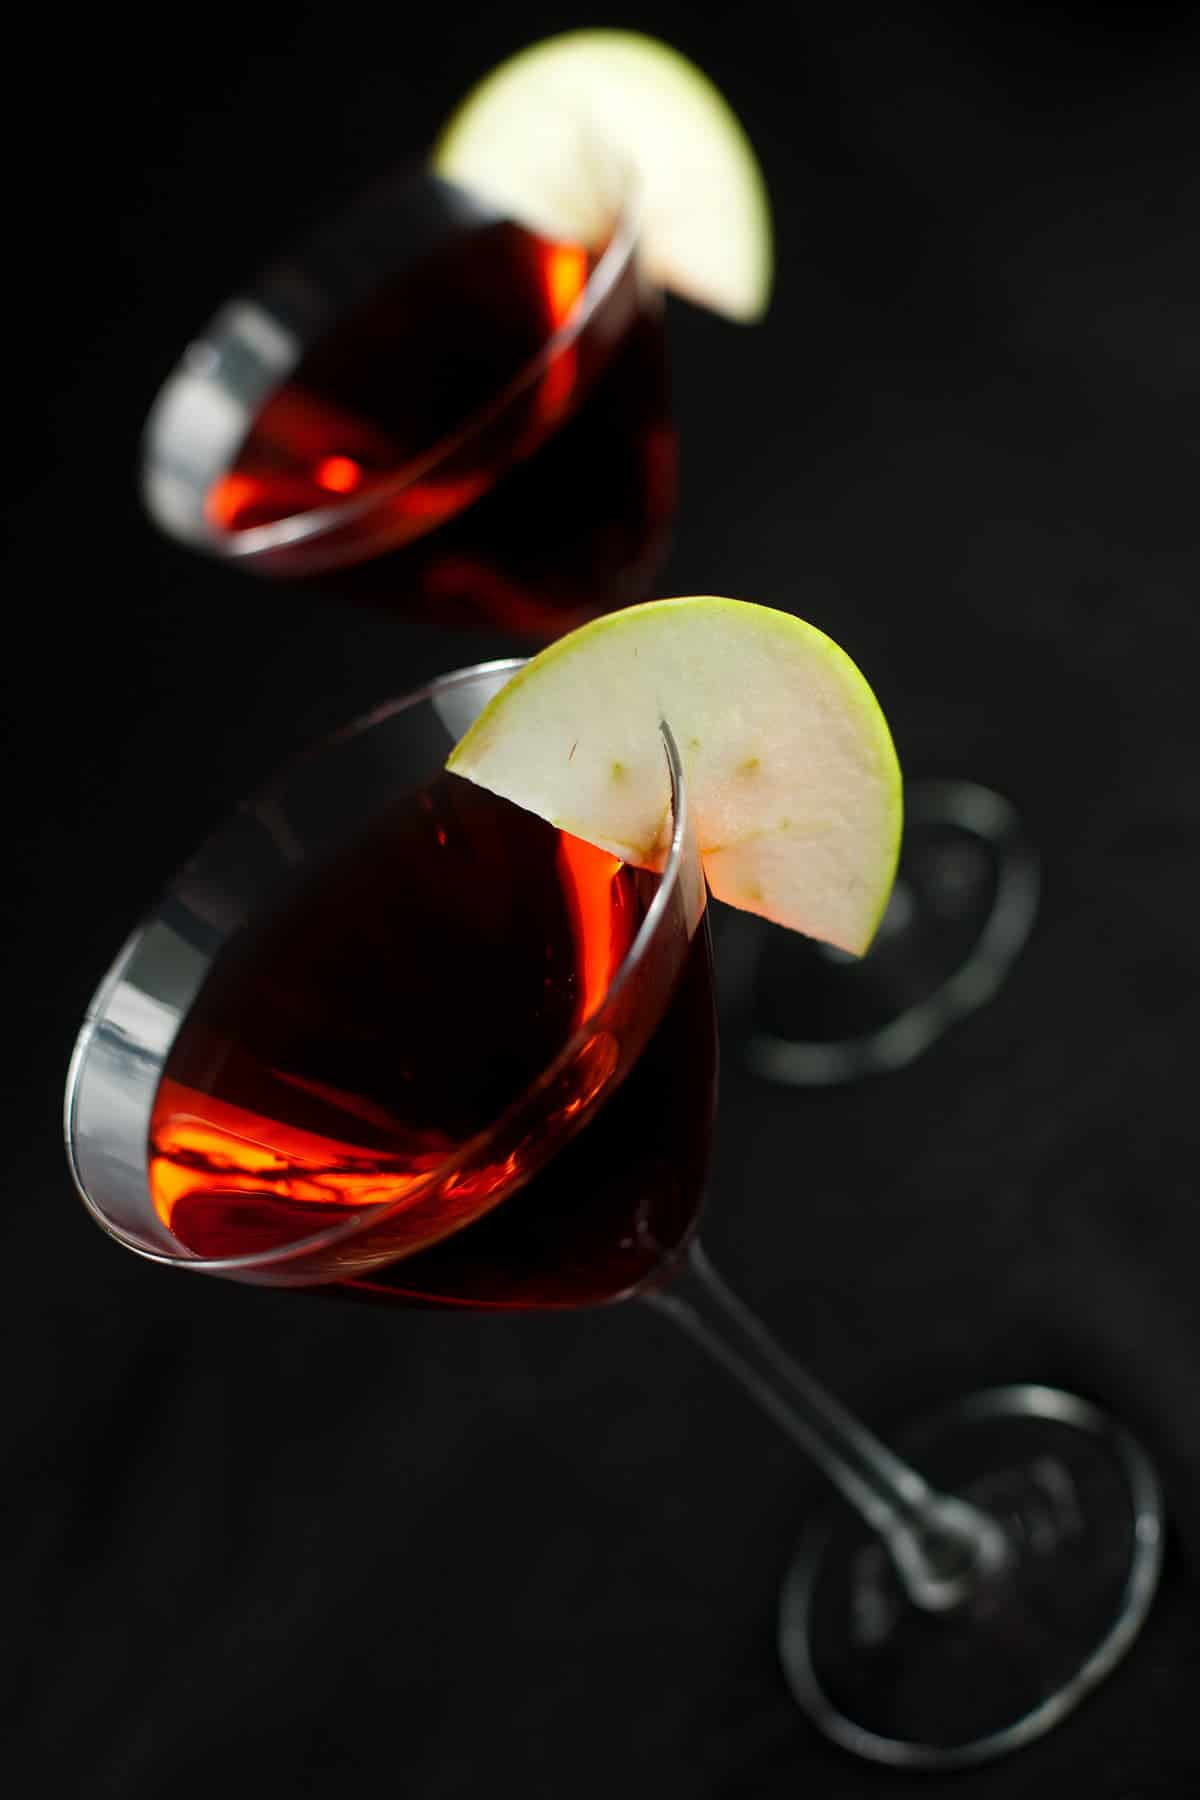 Two Candy Apple Martinis - large martini glasses are filled with a red liquid, and garnished with apple slices.